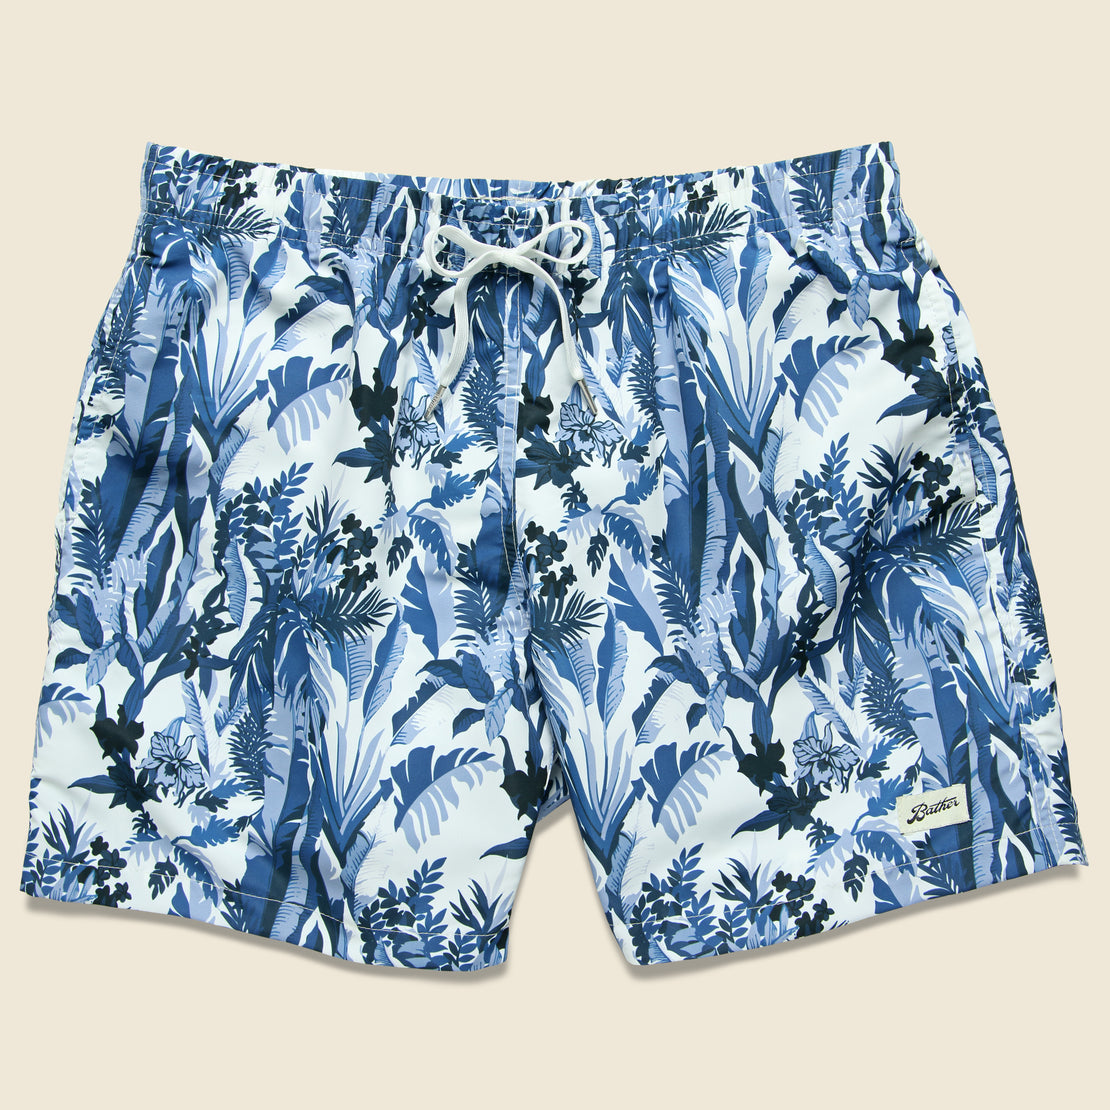 Bather Trunk Co. Tropical Forest Swim Trunk - Blue